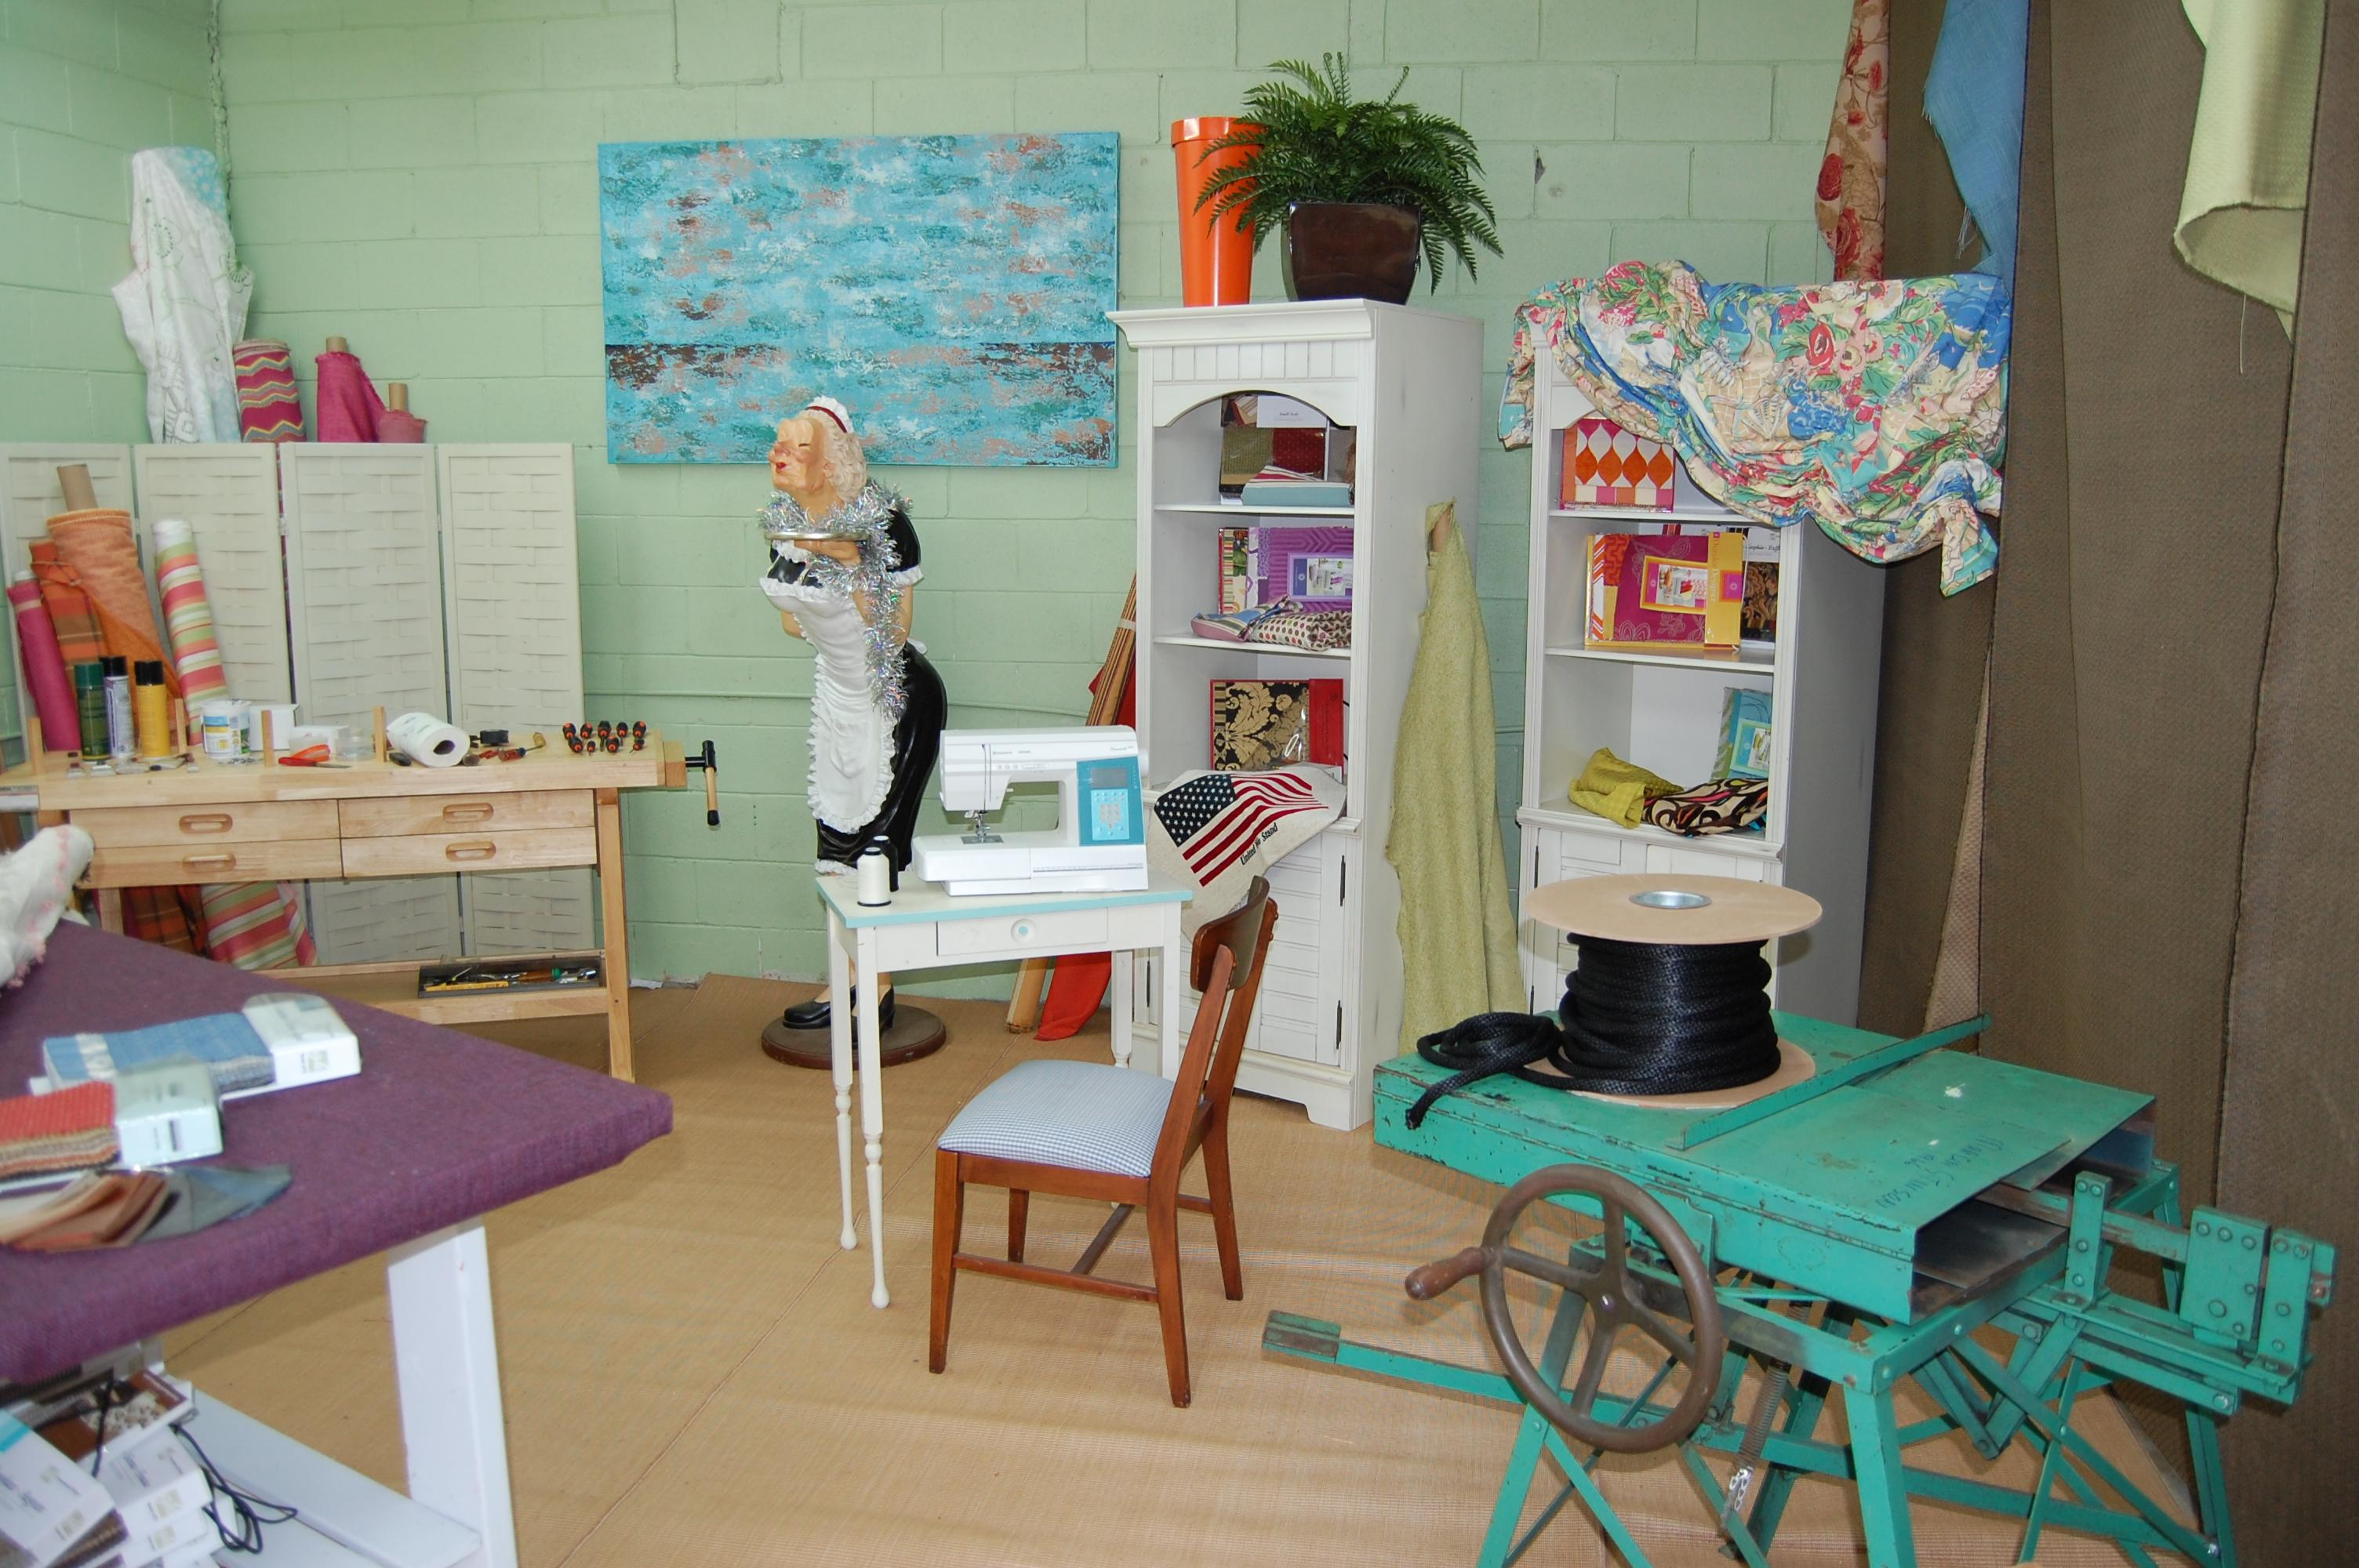 Soothing Wall Colors Create A Calming Ambience In A Garage Converted Into A  Sewing Studio. (Photo: DIY/Scripps Network)